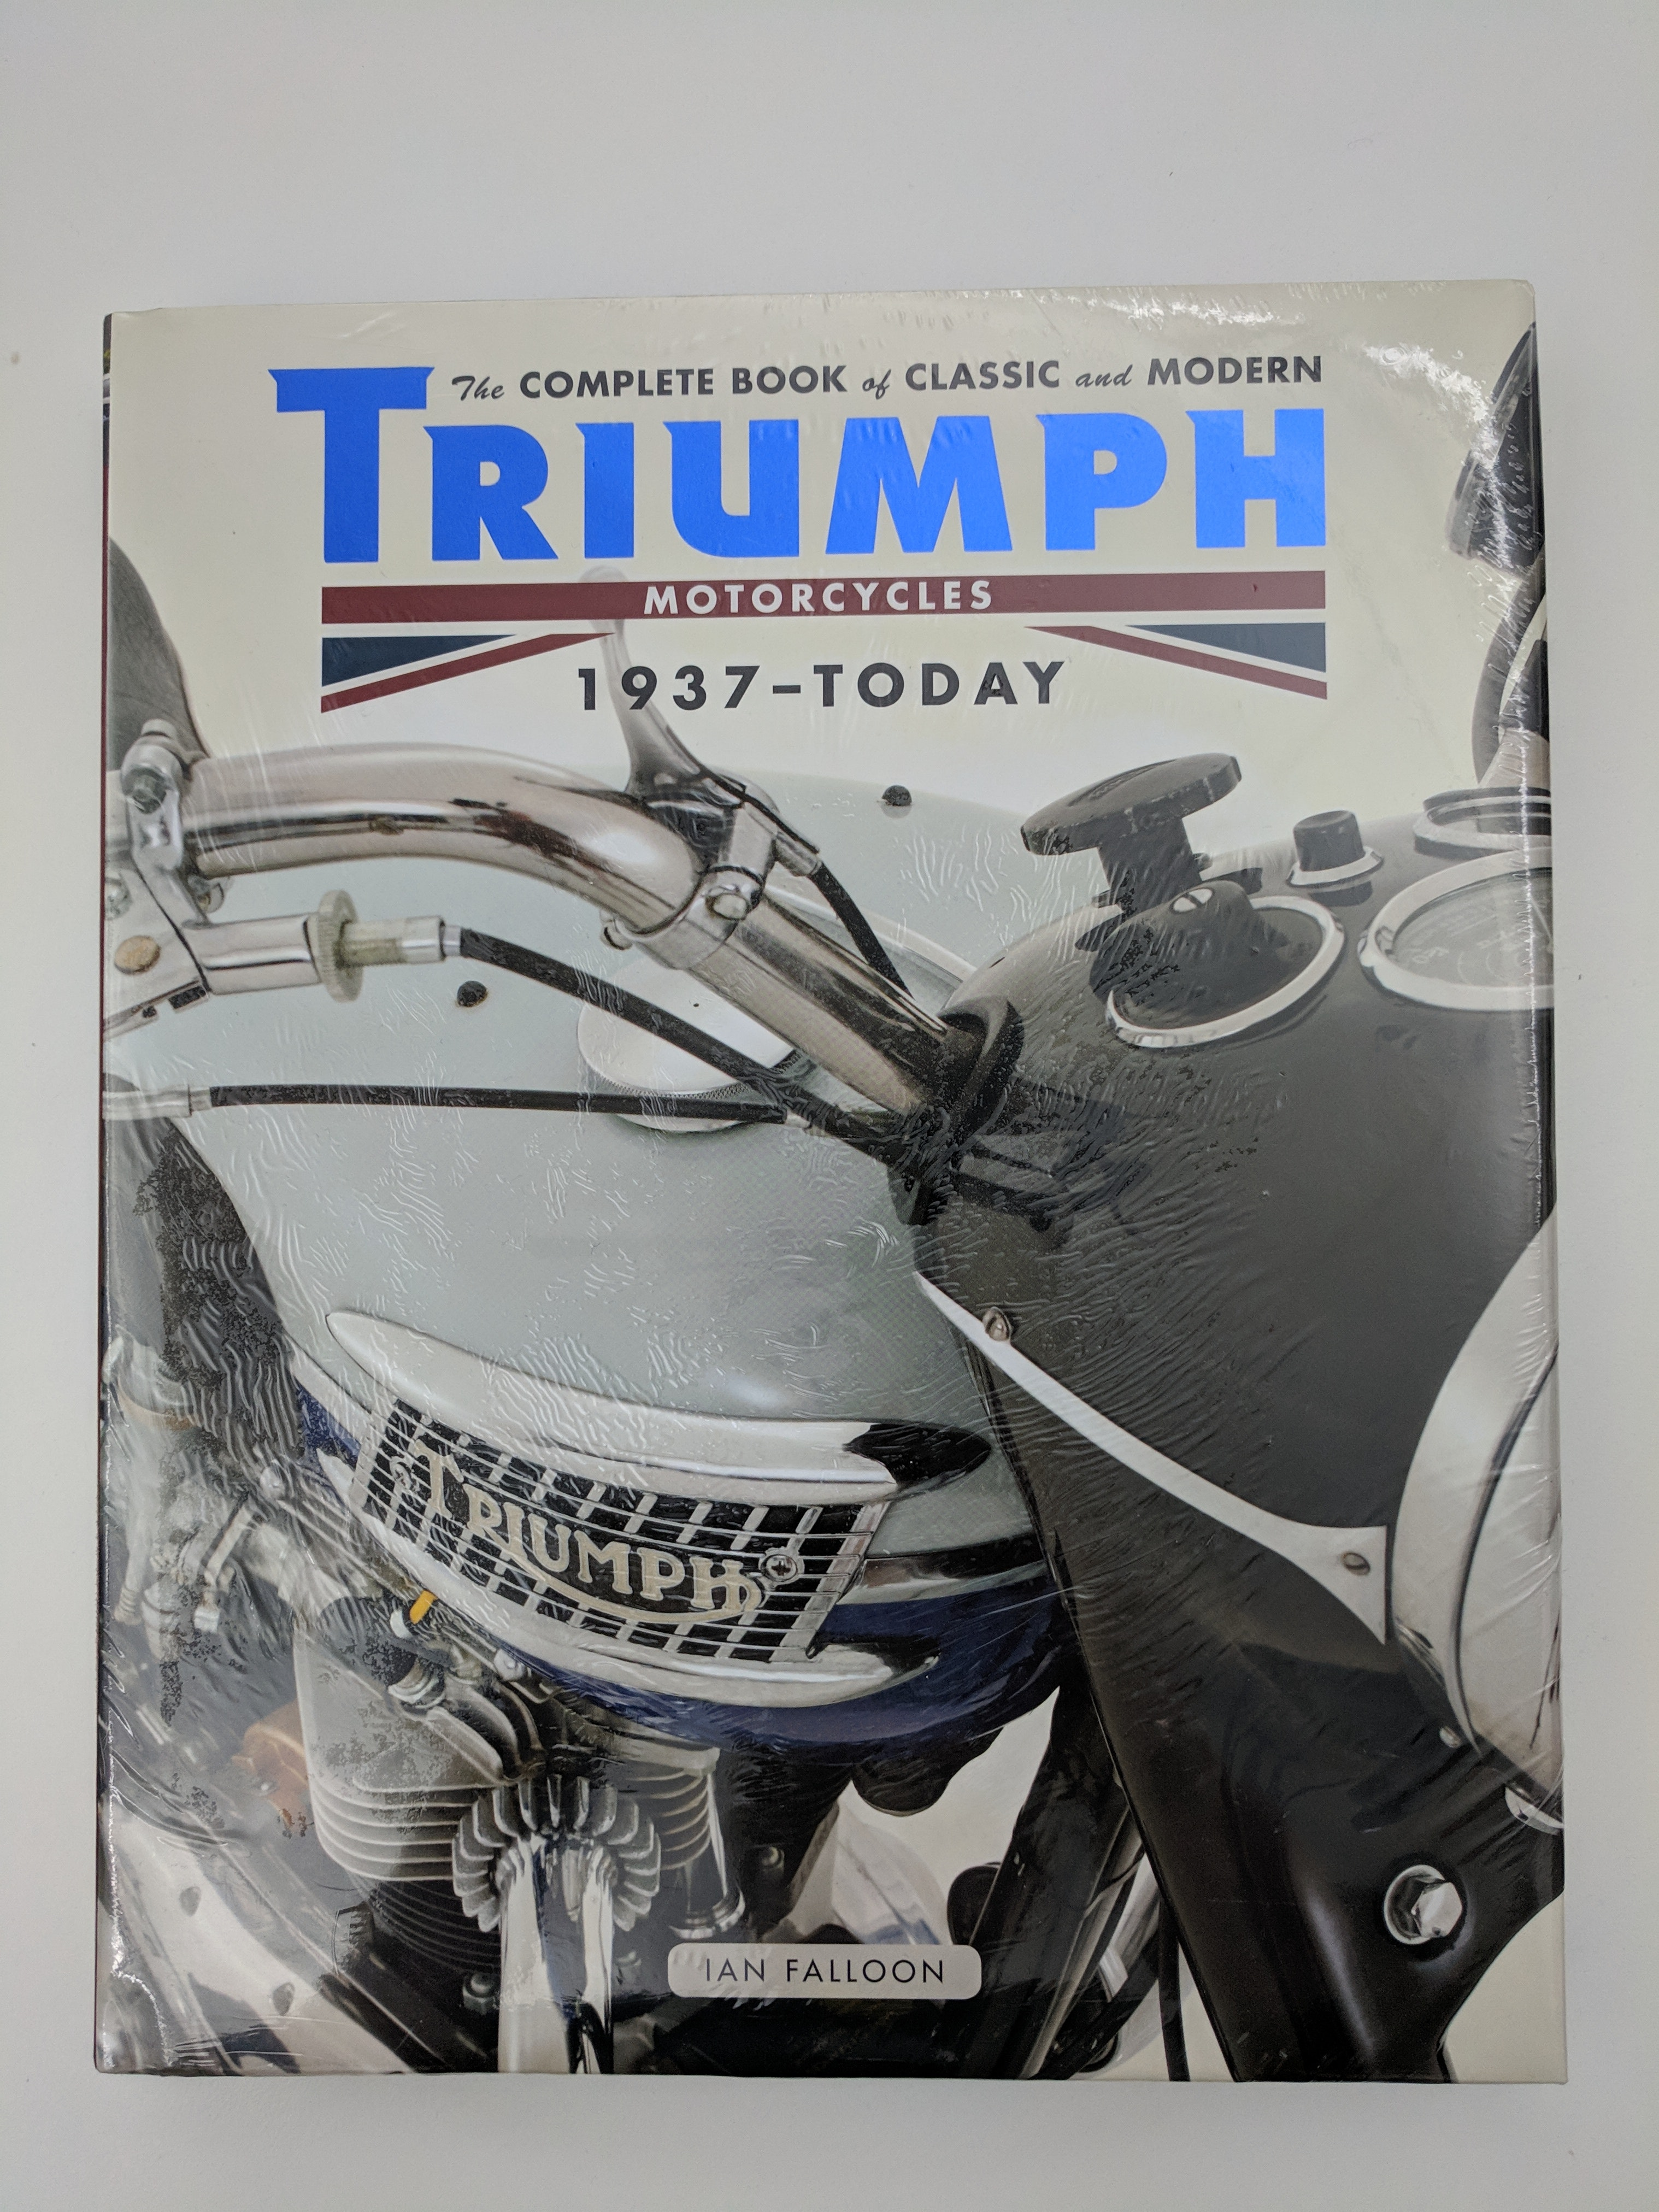 Triumph book sweepstakes